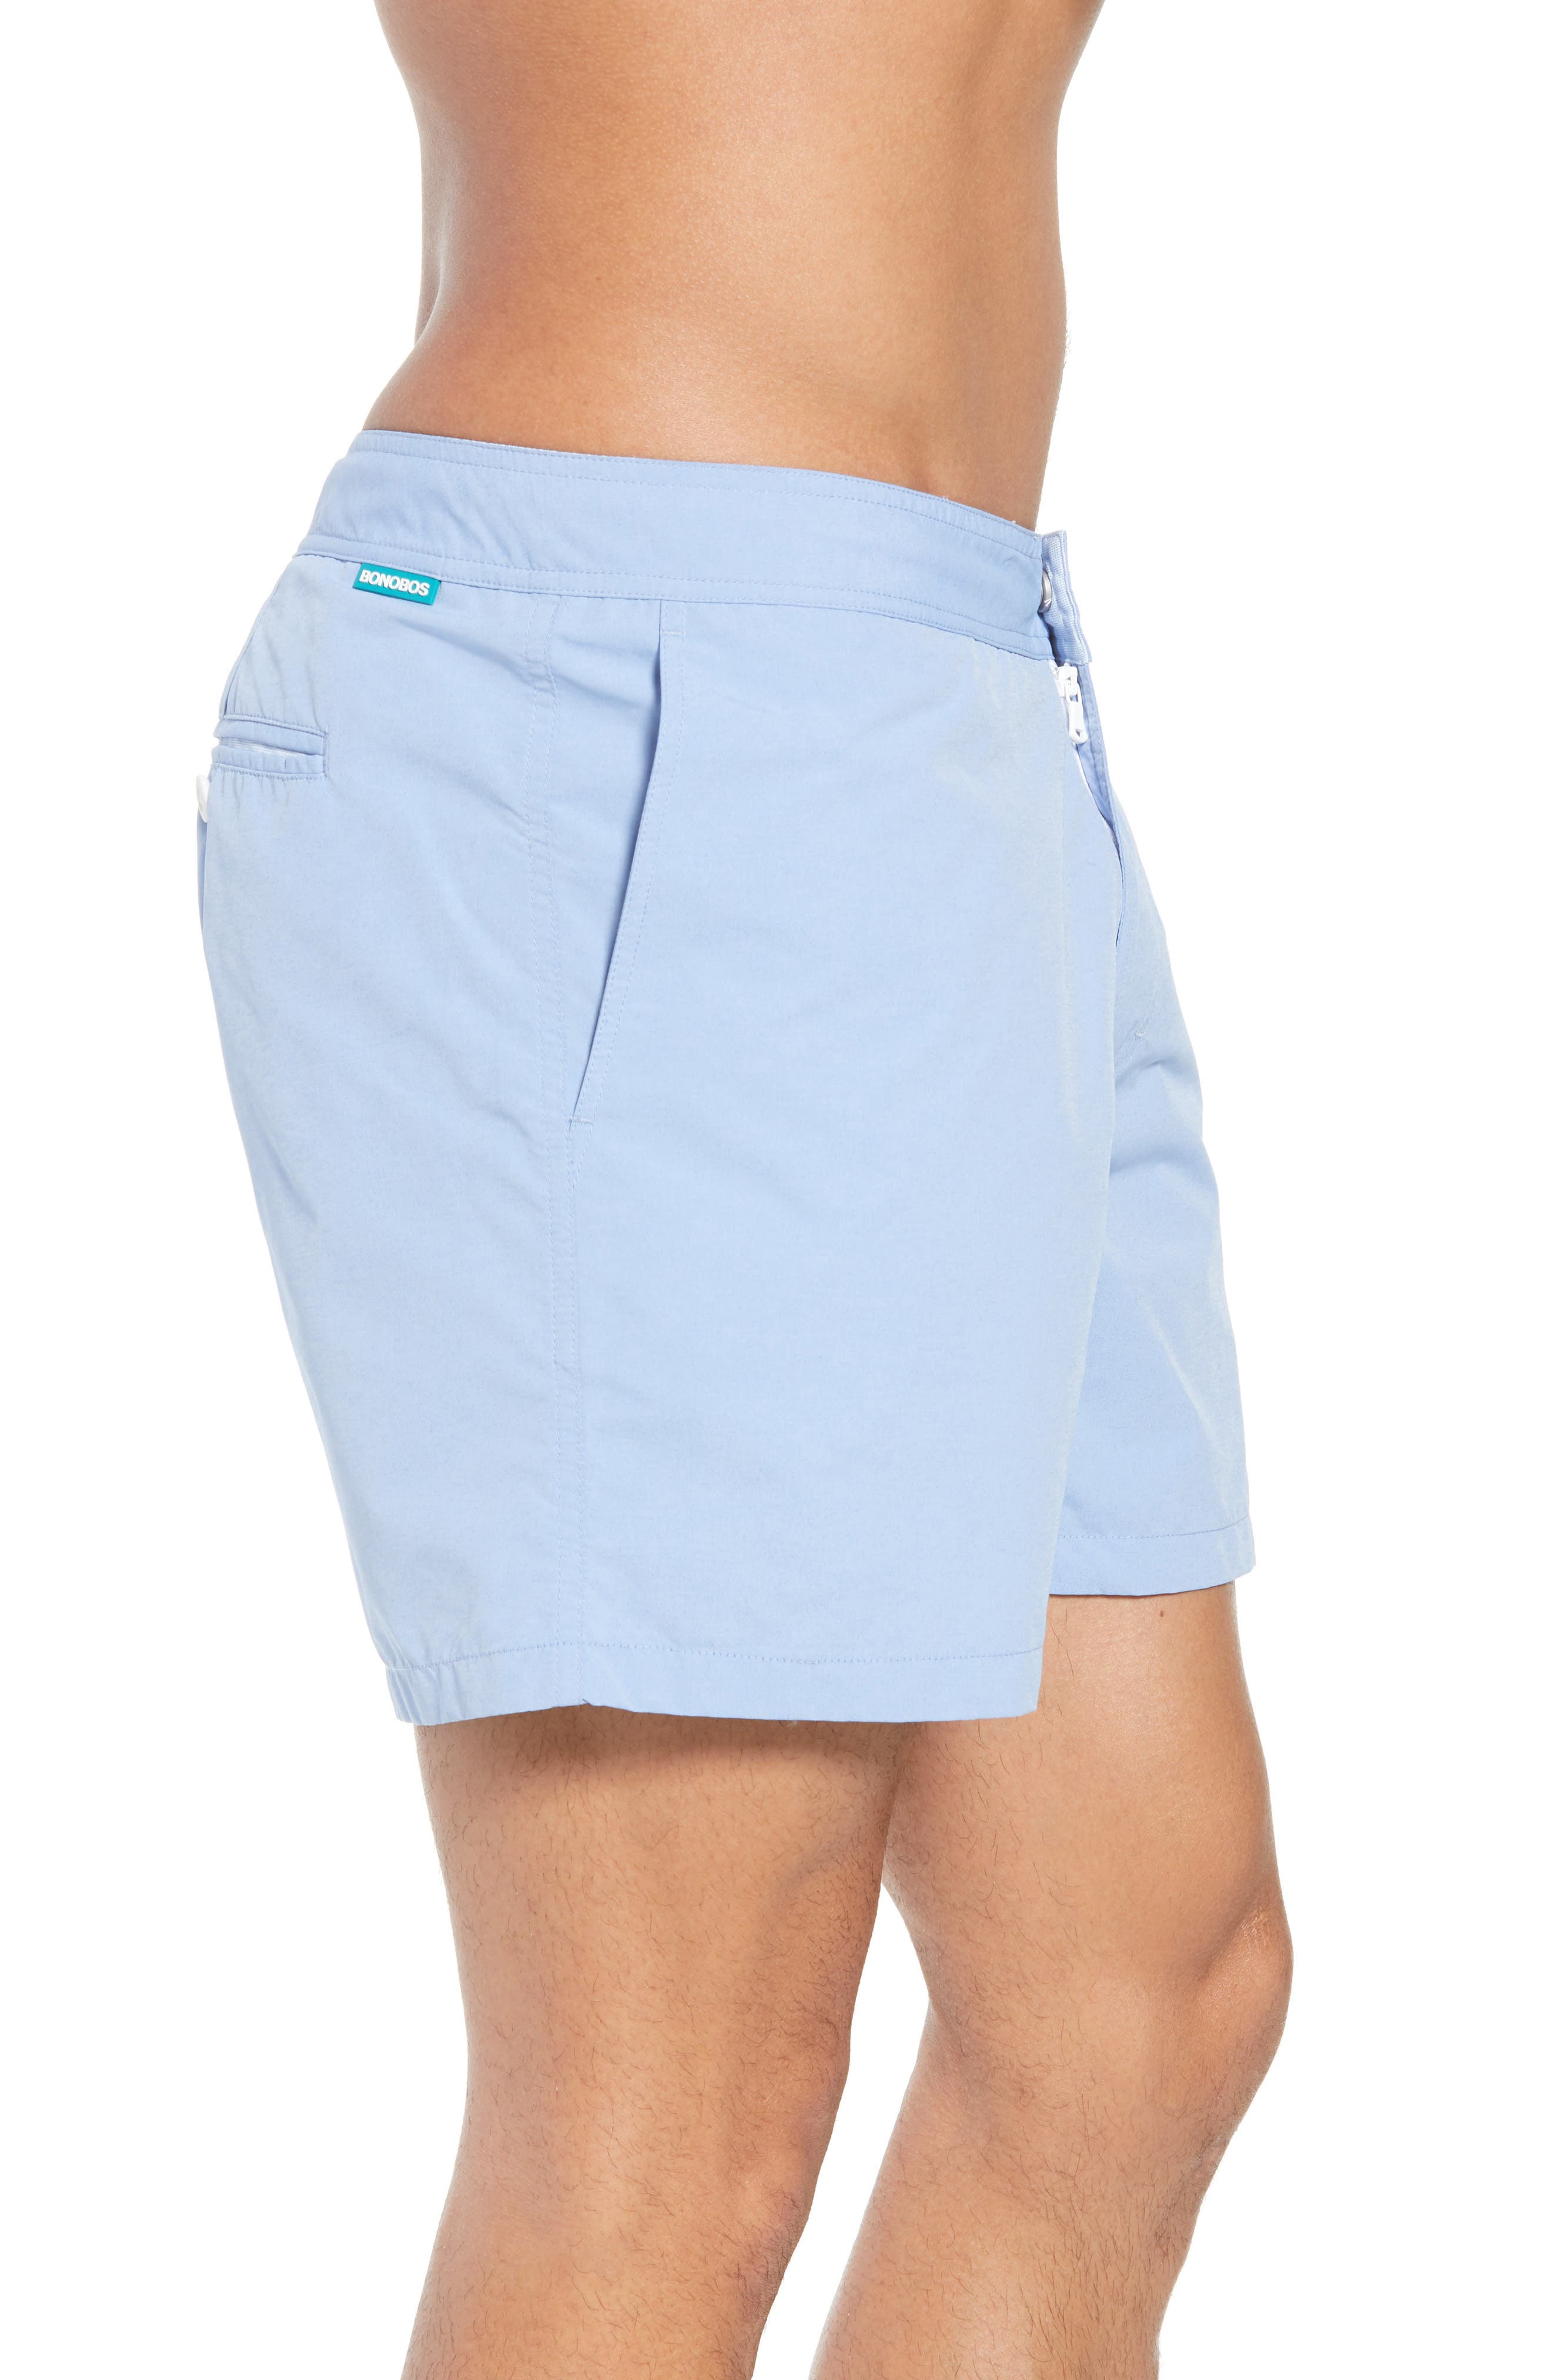 Solid 5-Inch Swim Trunks,                             Alternate thumbnail 3, color,                             Blue Chambray